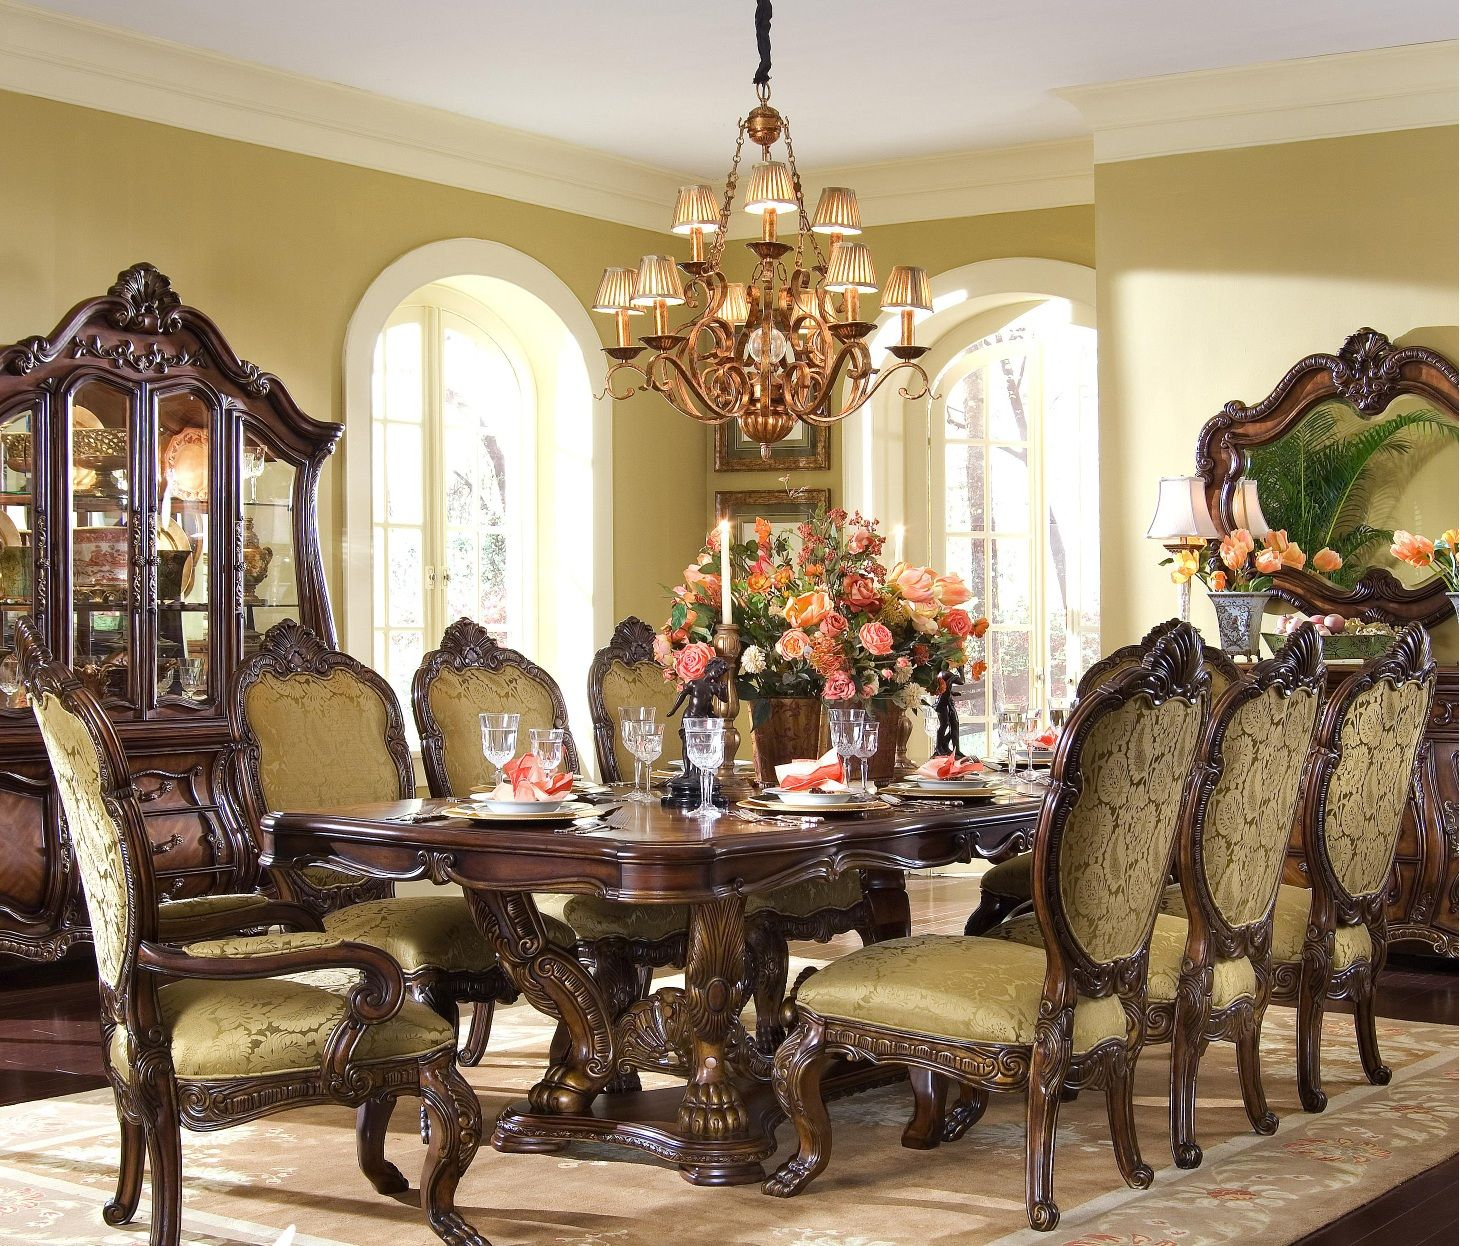 Victorian Dining Room Sets: Victorian Dining Room